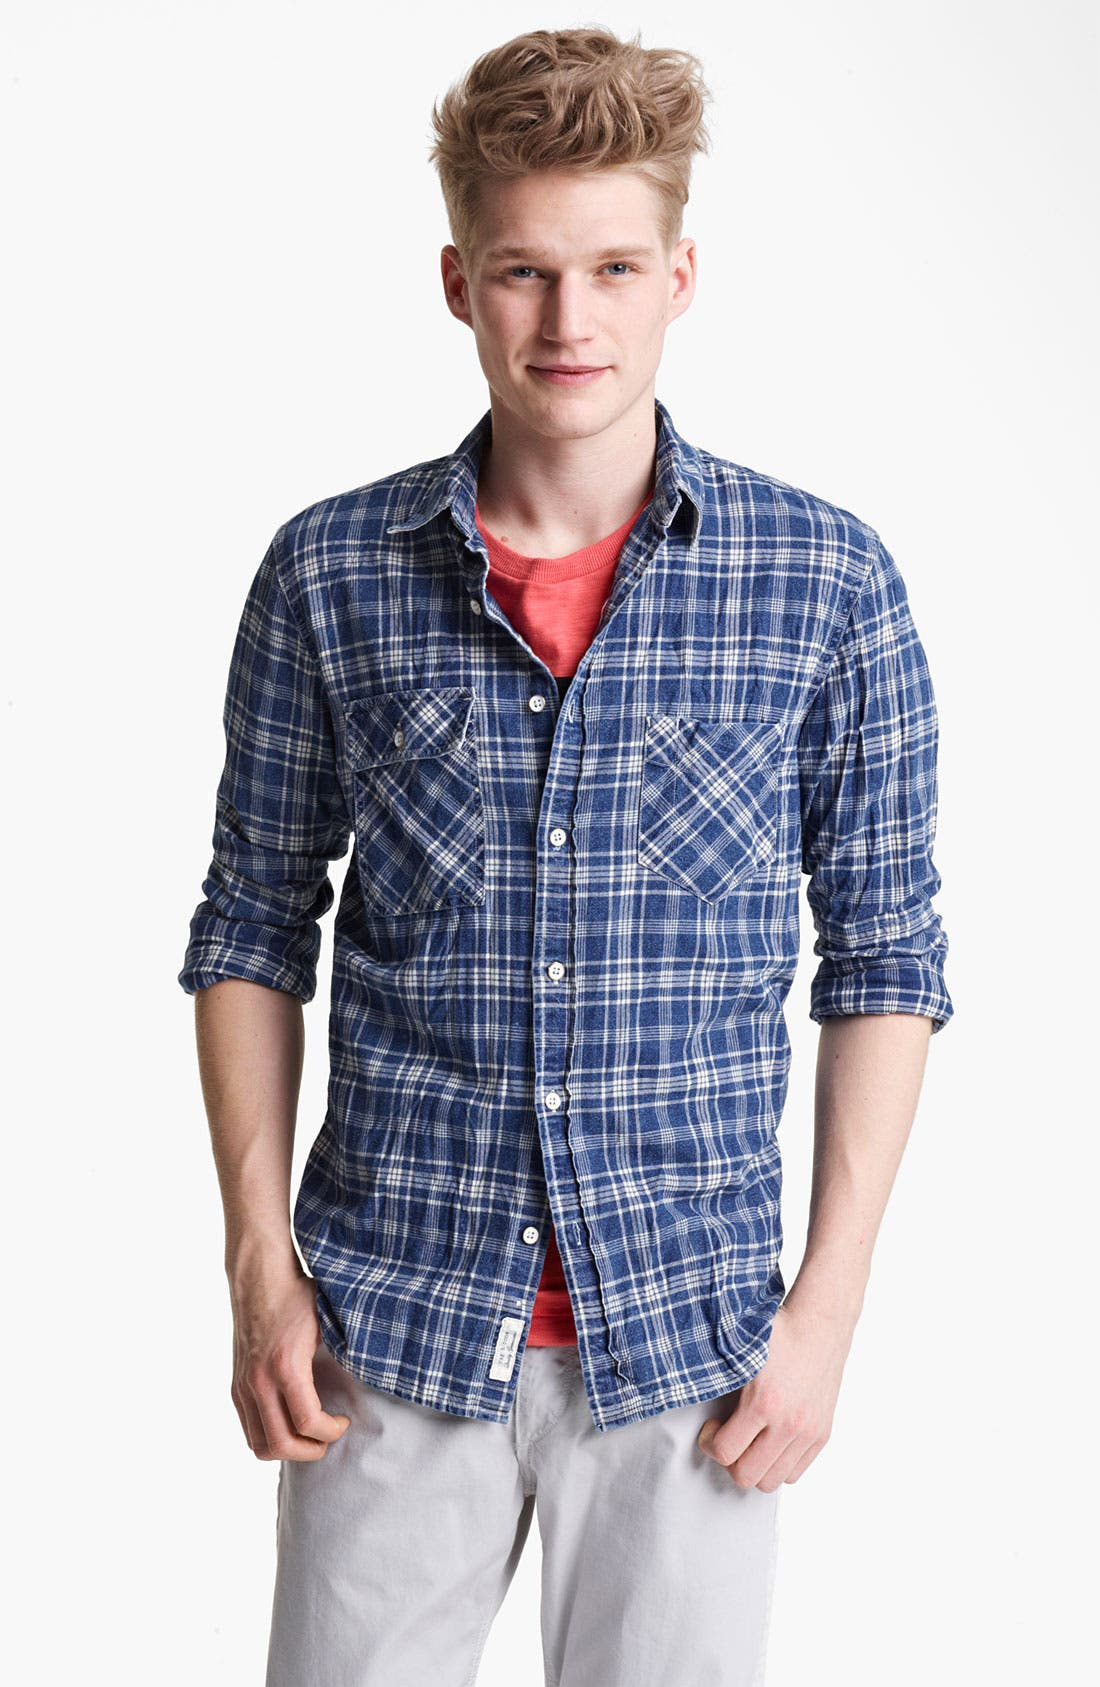 Alternate Image 1 Selected - rag & bone 'Trail' Plaid Woven Shirt